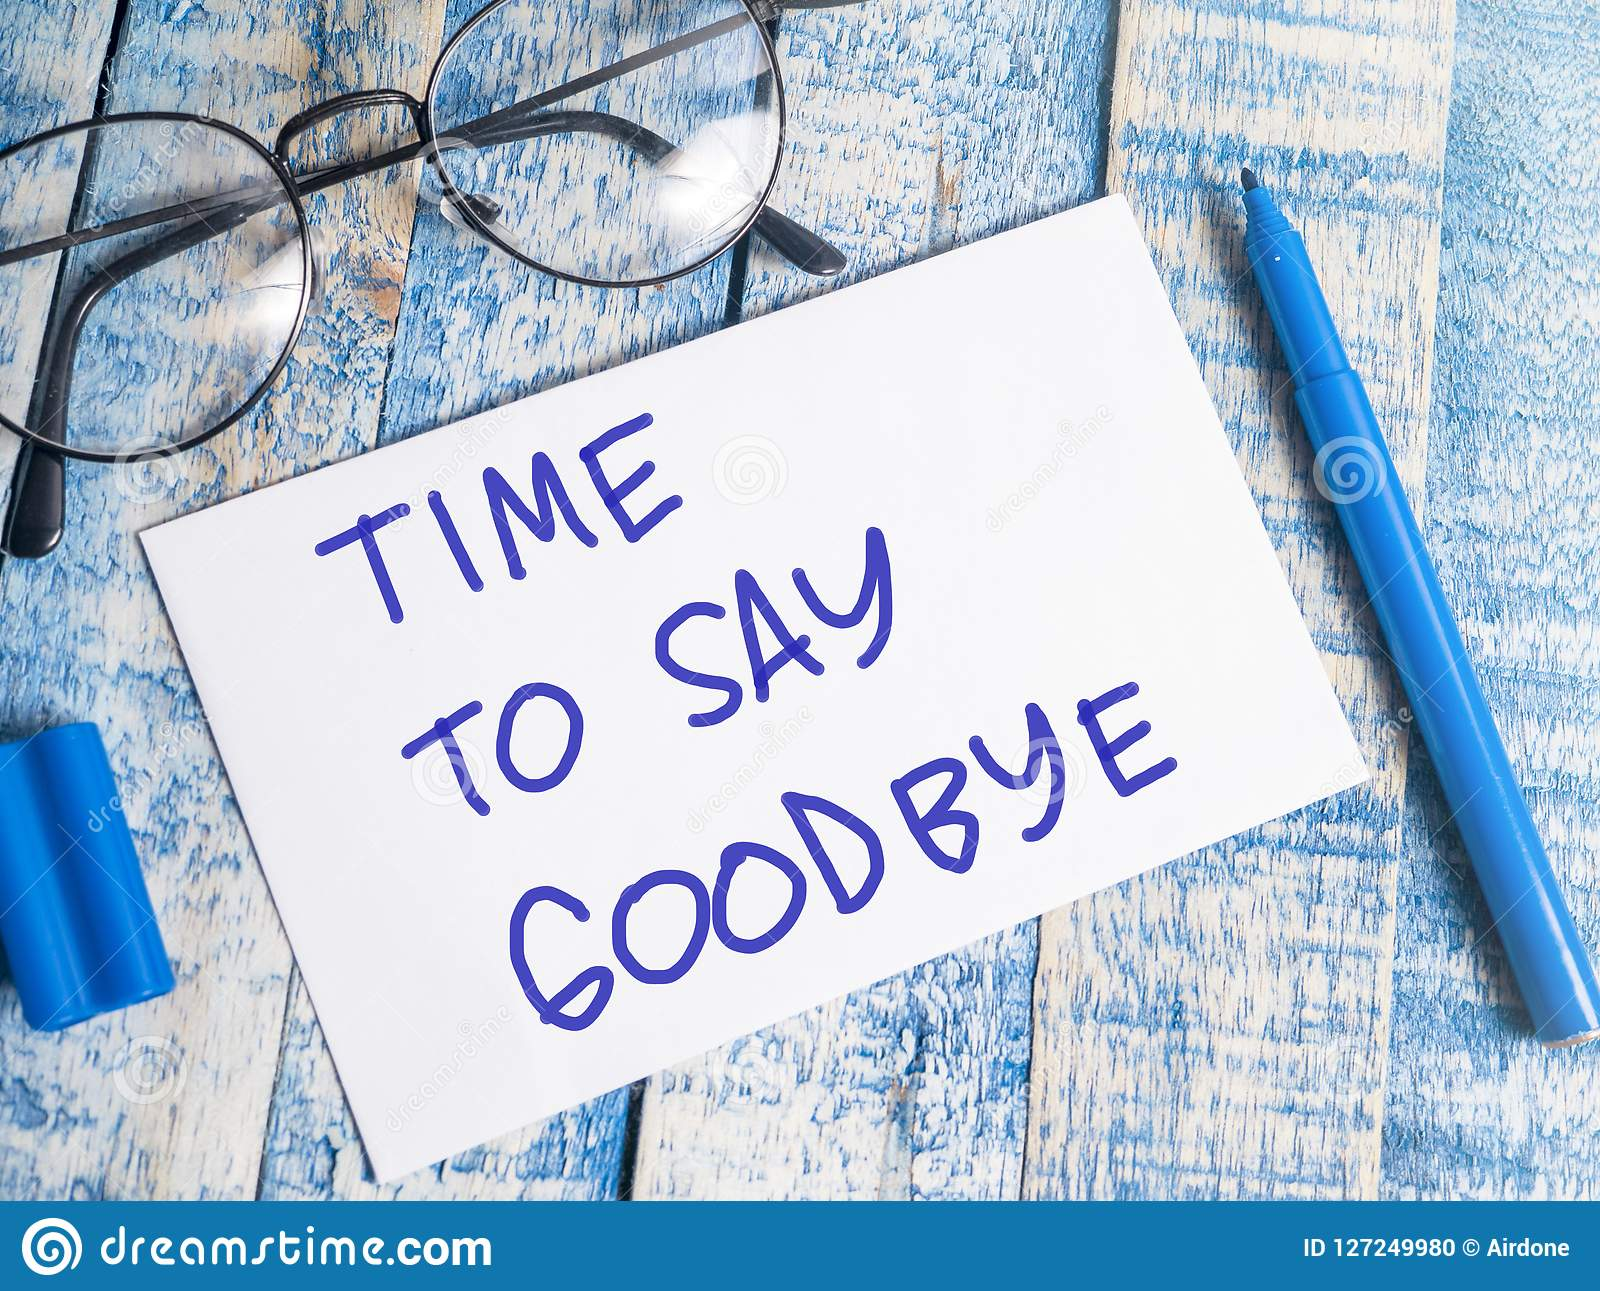 Time To Say Goodbye Motivational Words Quotes Concept Stock Photo